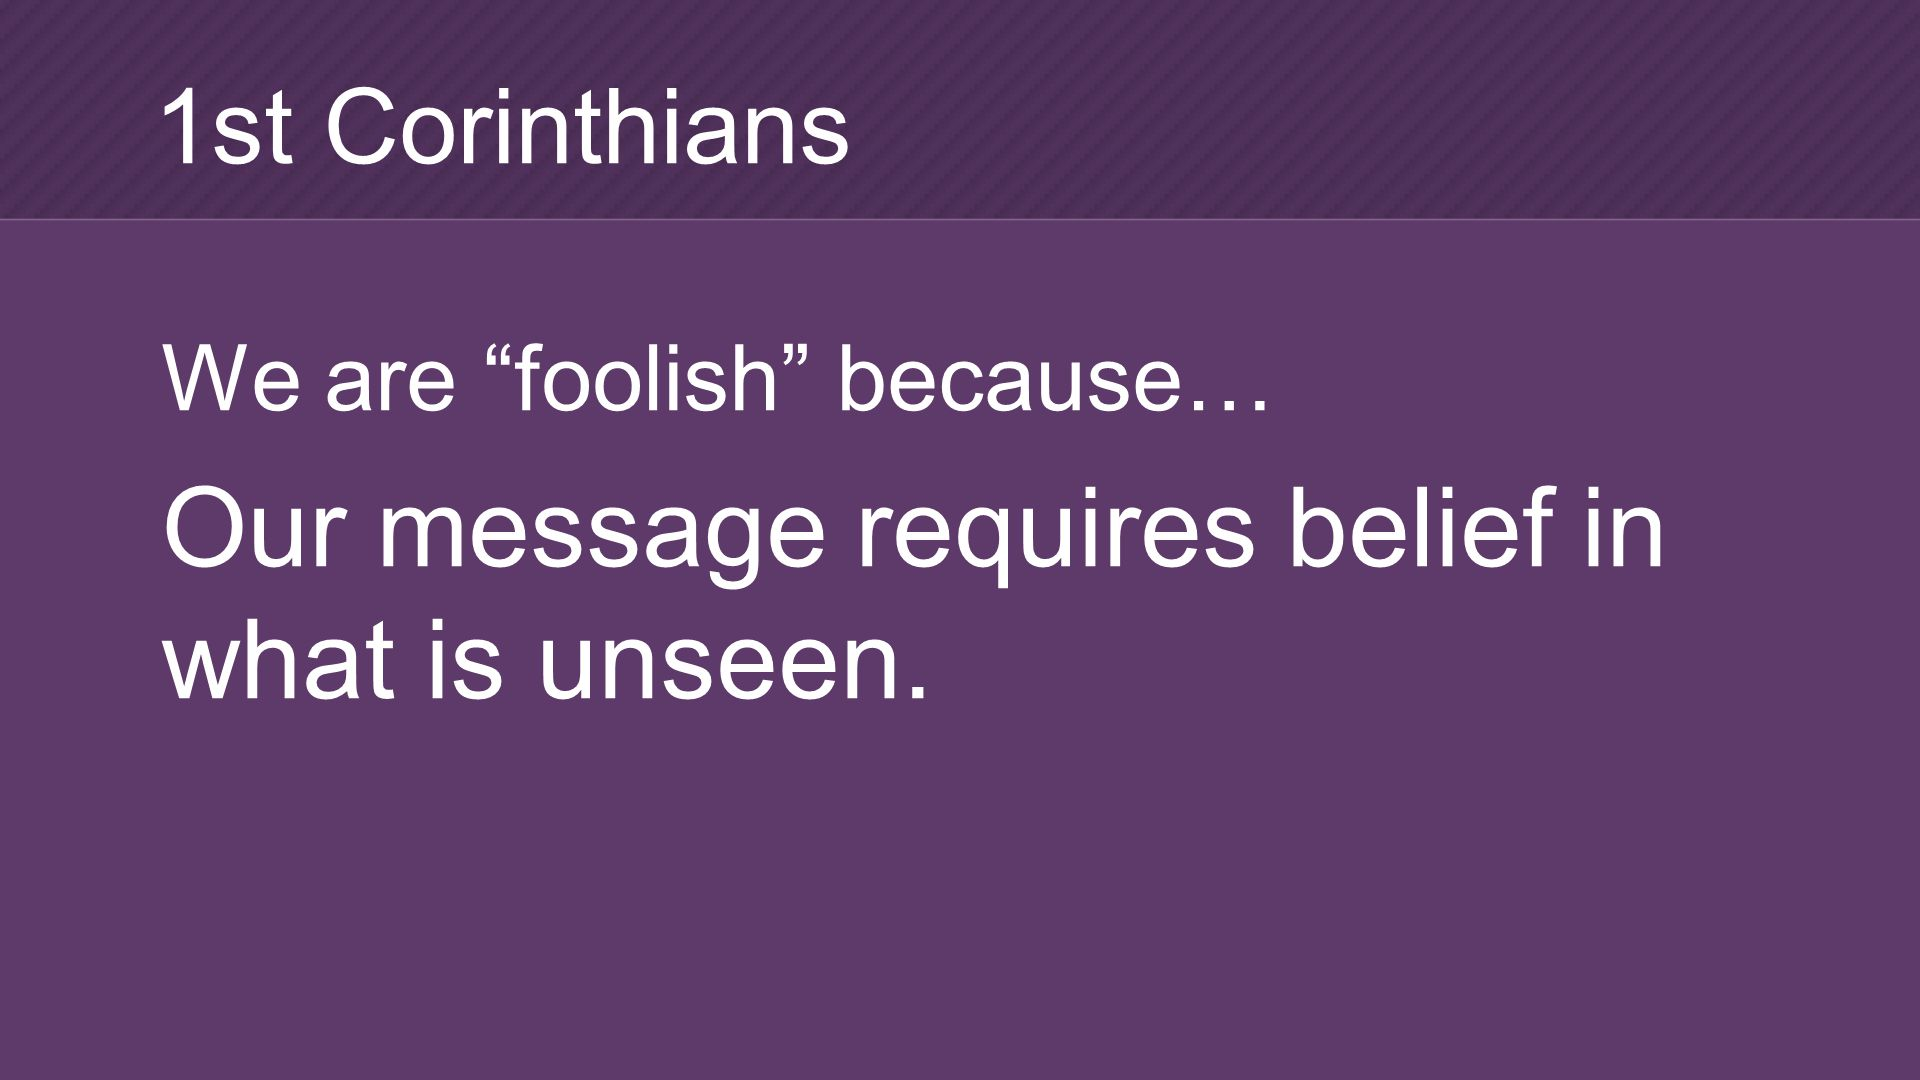 We are foolish because… Our message requires belief in what is unseen. 1st Corinthians